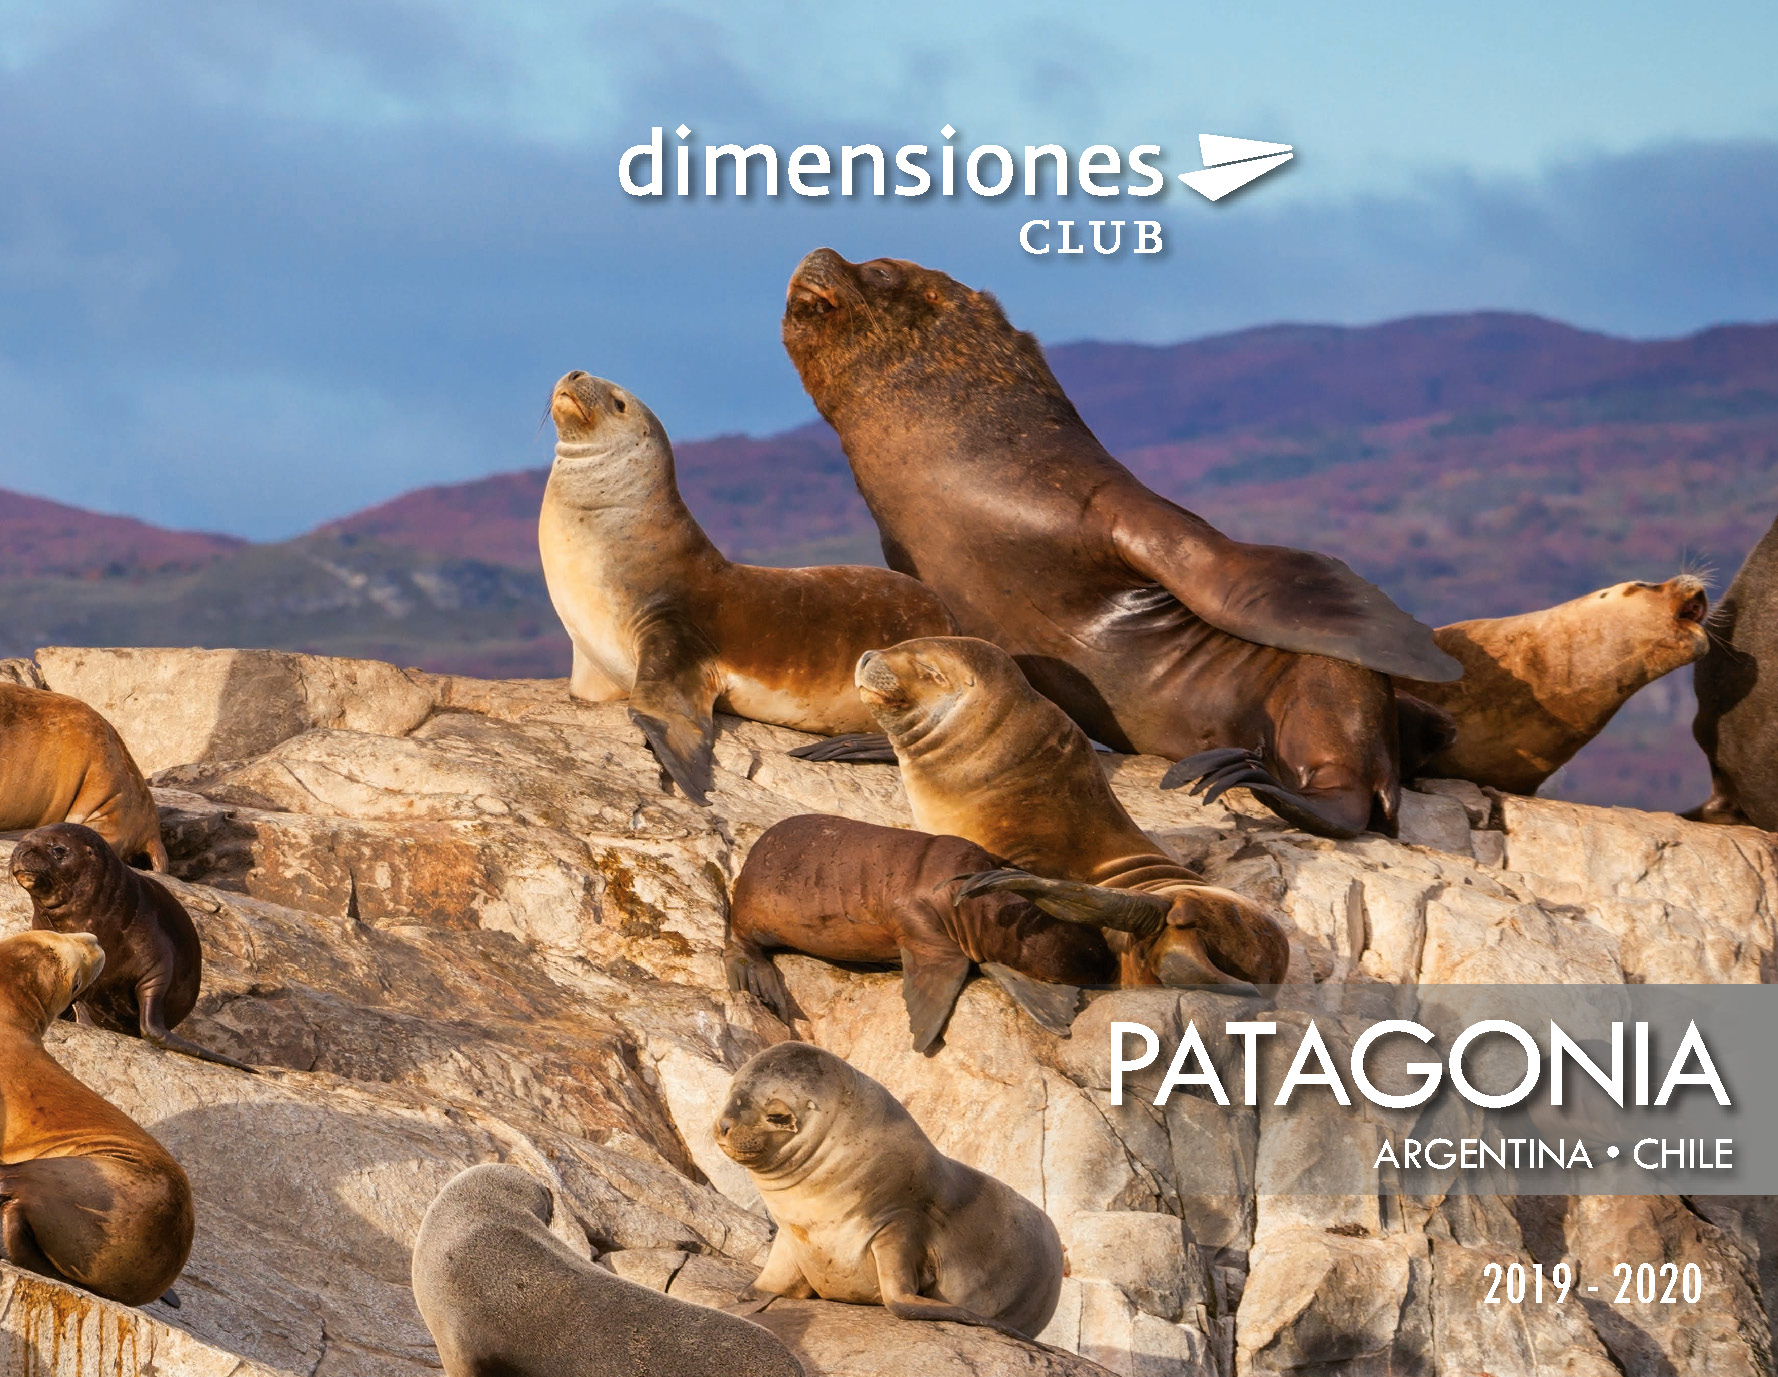 Catalogo Dimensiones Club Patagonia 2019-2020